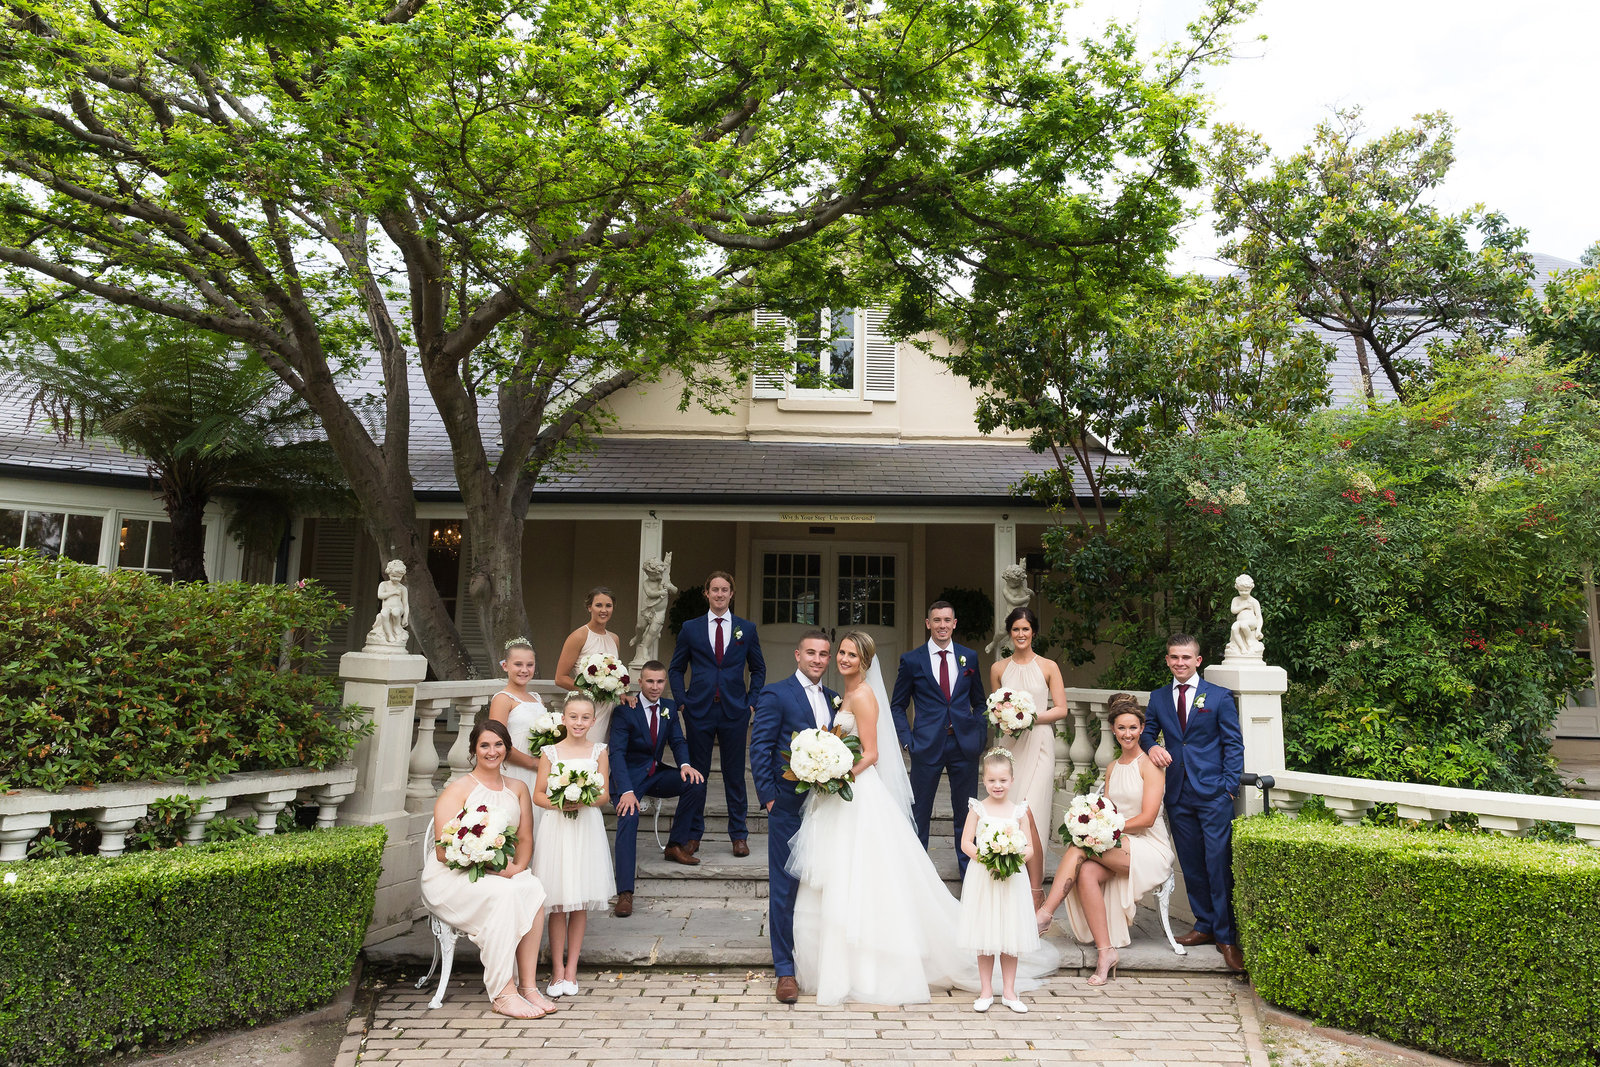 Bridal Party - Karen Gilvear Photography